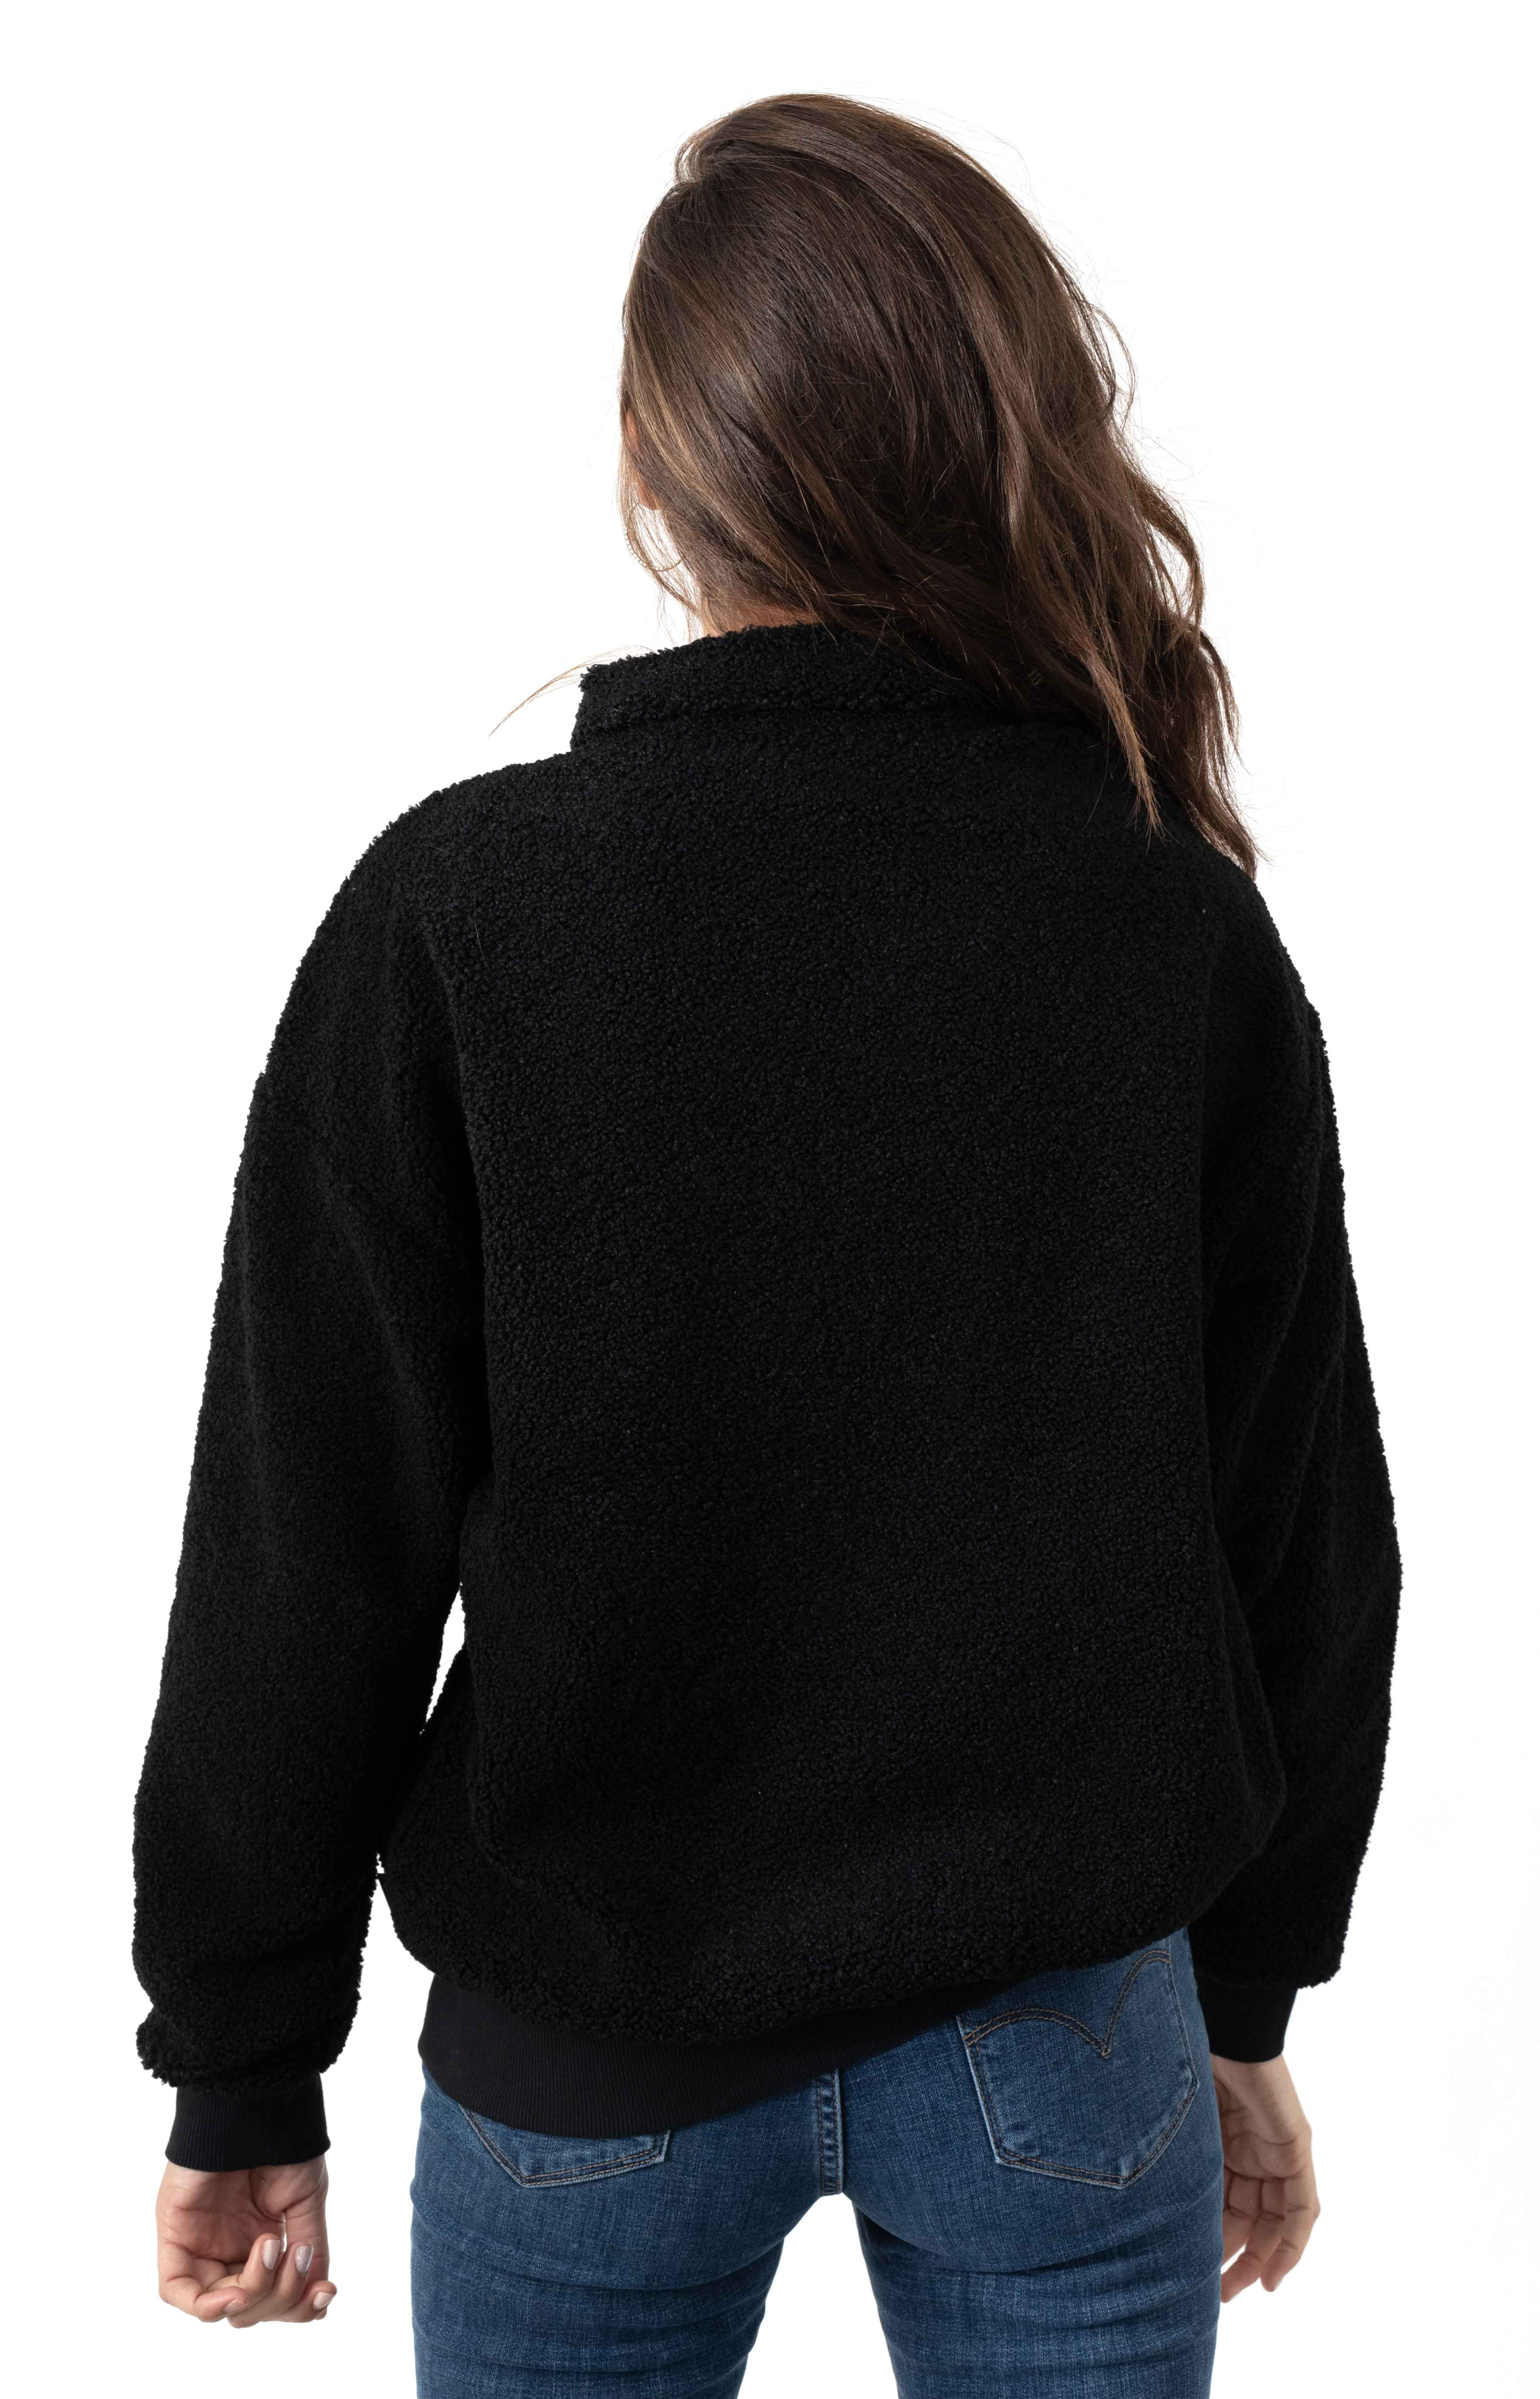 66 Supply Zip Sherpa Jacket - Black  3